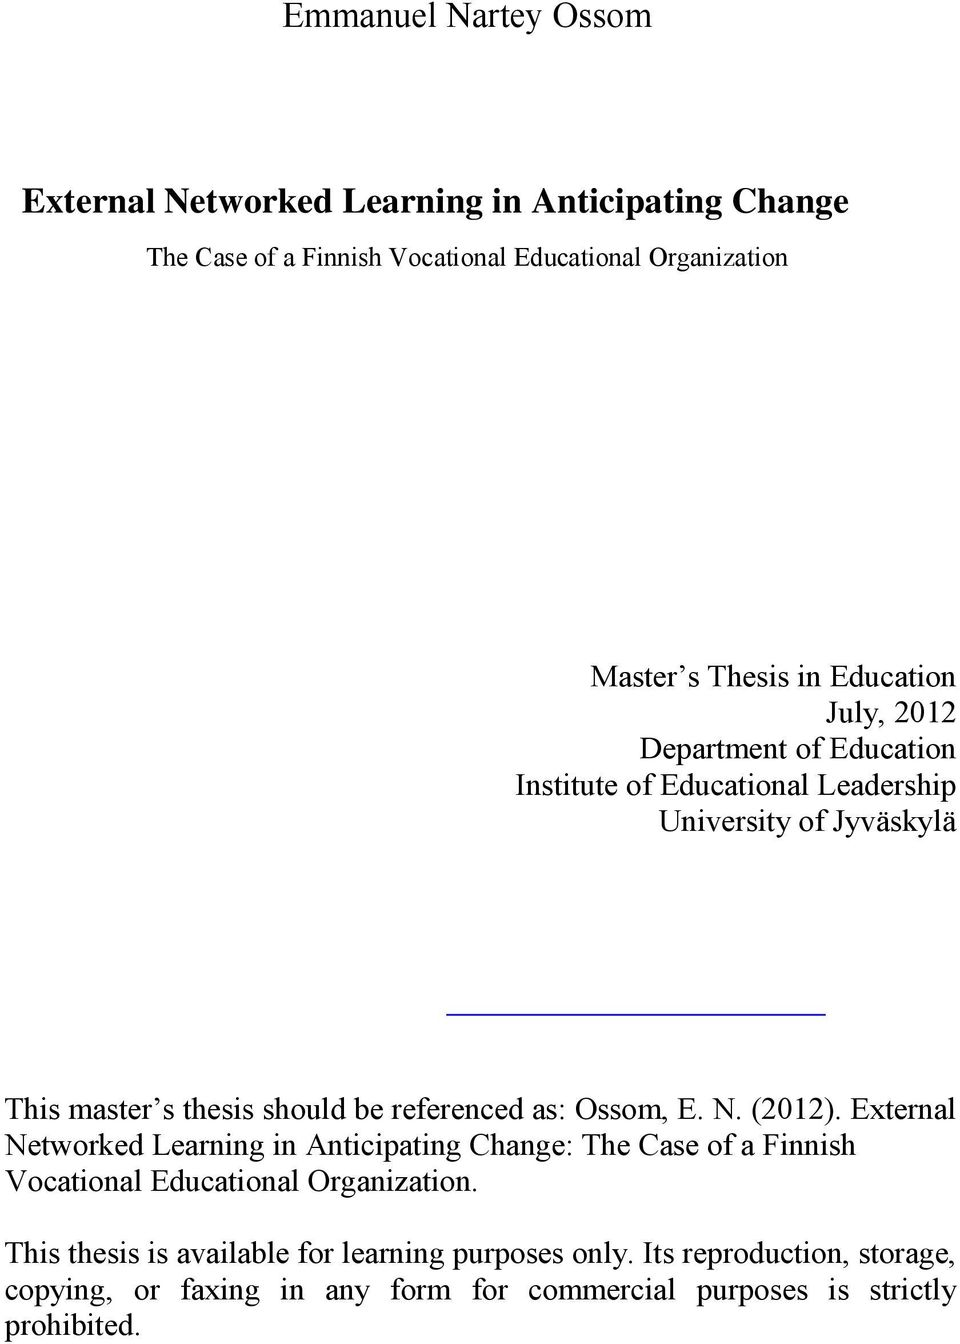 referenced as: Ossom, E. N. (2012). External Networked Learning in Anticipating Change: The Case of a Finnish Vocational Educational Organization.